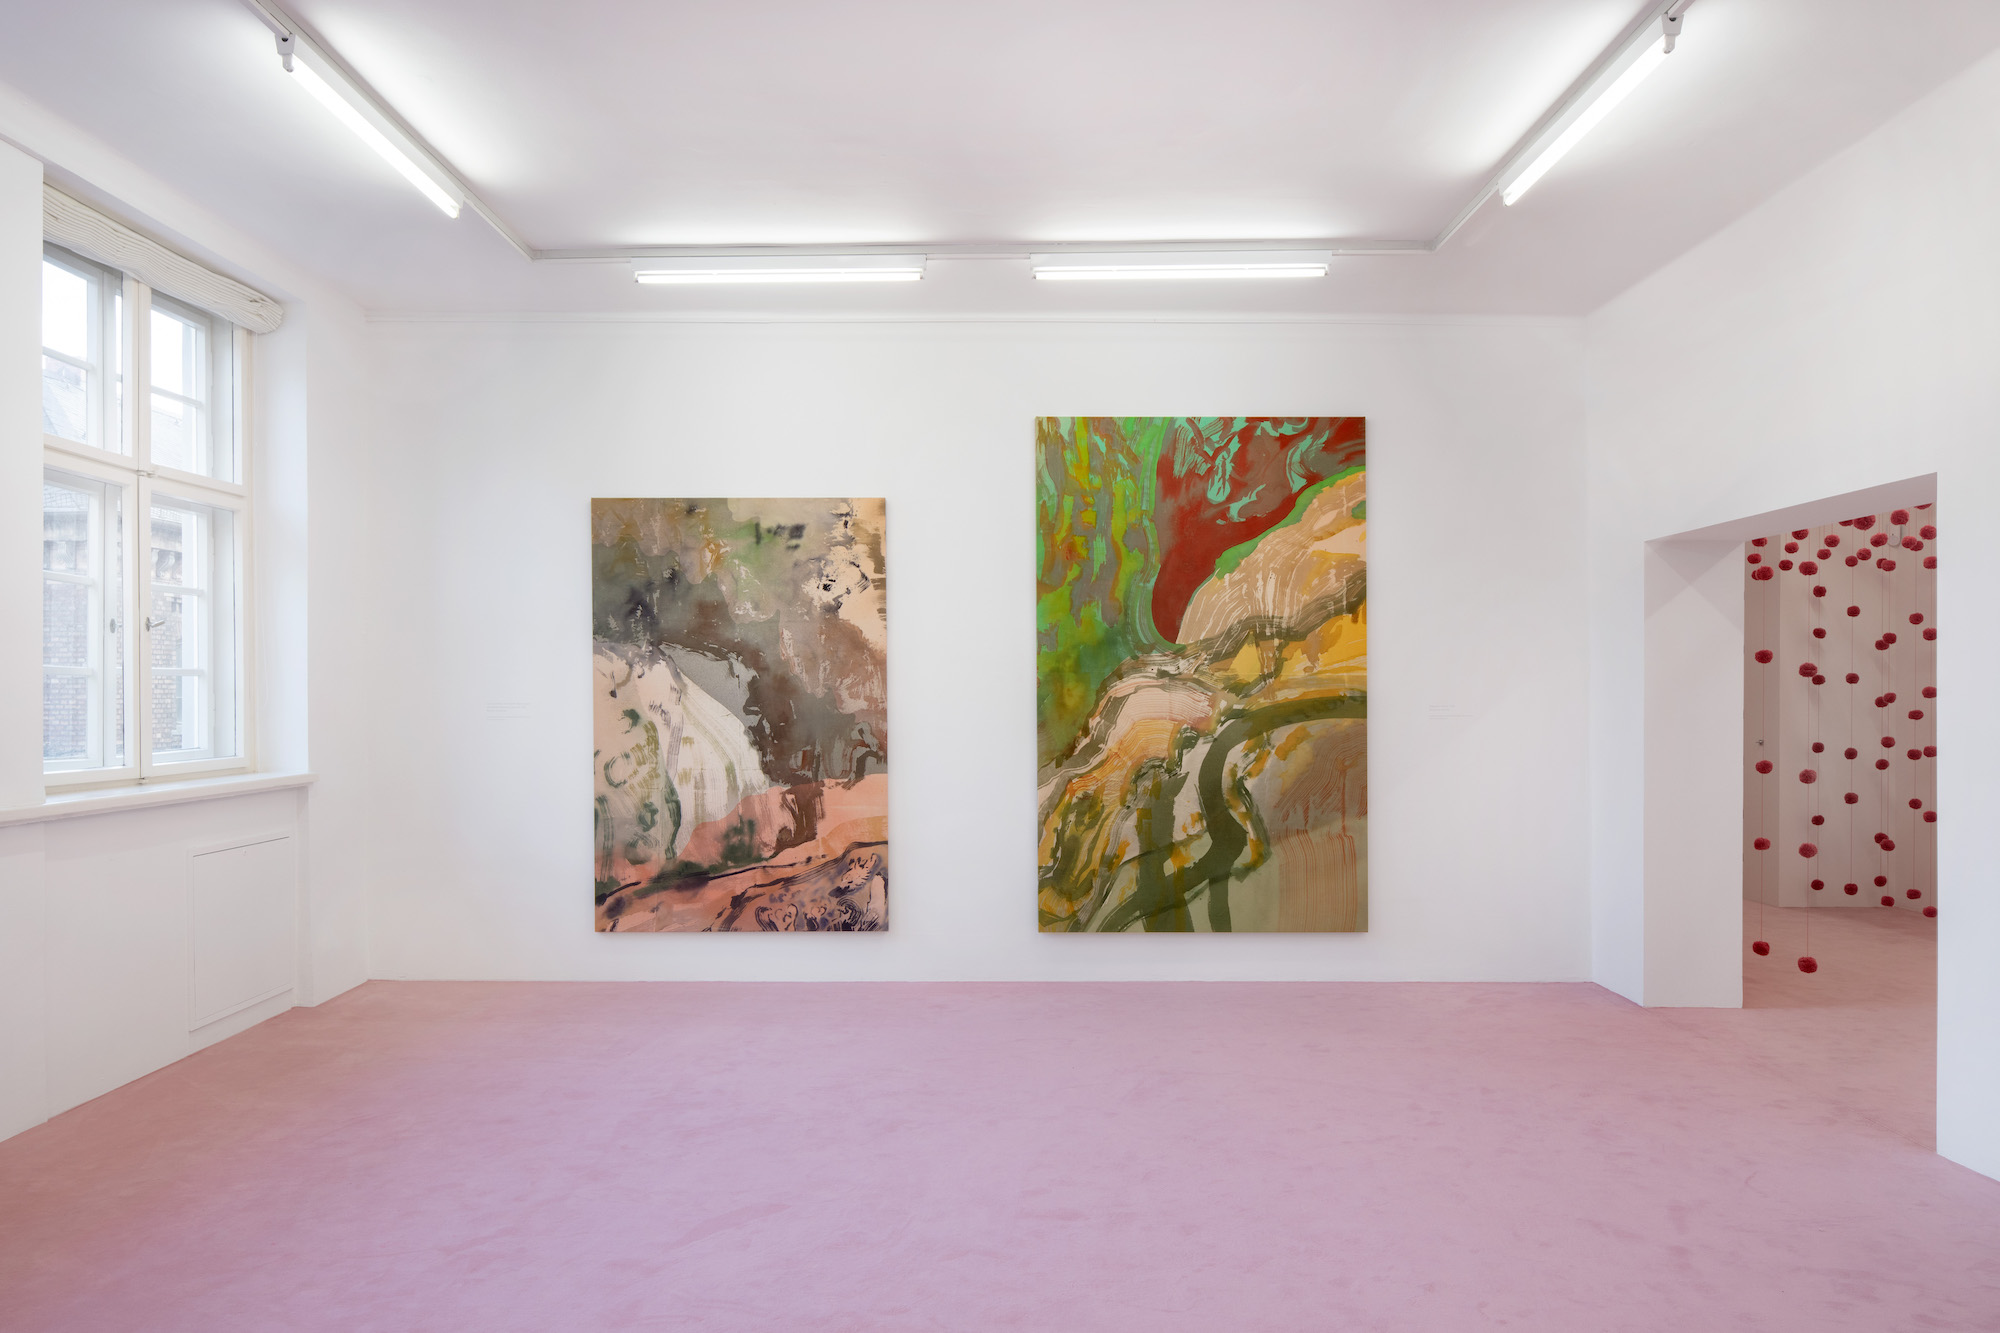 Installation view: Matthew Lutz-Kinoy. Window to the Clouds; Salon Berlin, Museum Frieder Burda Matthew Lutz-Kinoy, Vue du torrent du Valentin dans le parc des Buttes Chaumont au sud, 2020. Acrylic on canvas, 197 x 138 cm; Capriccio à Paris, 2020. Acrylic on canvas, 160 x 250 cm. Courtesy of the artist and Mendes Wood DM São Paulo, New York and Brussels; An opening of the field, 2020. Wool. Courtesy of the artist; Photo: Thomas Bruns